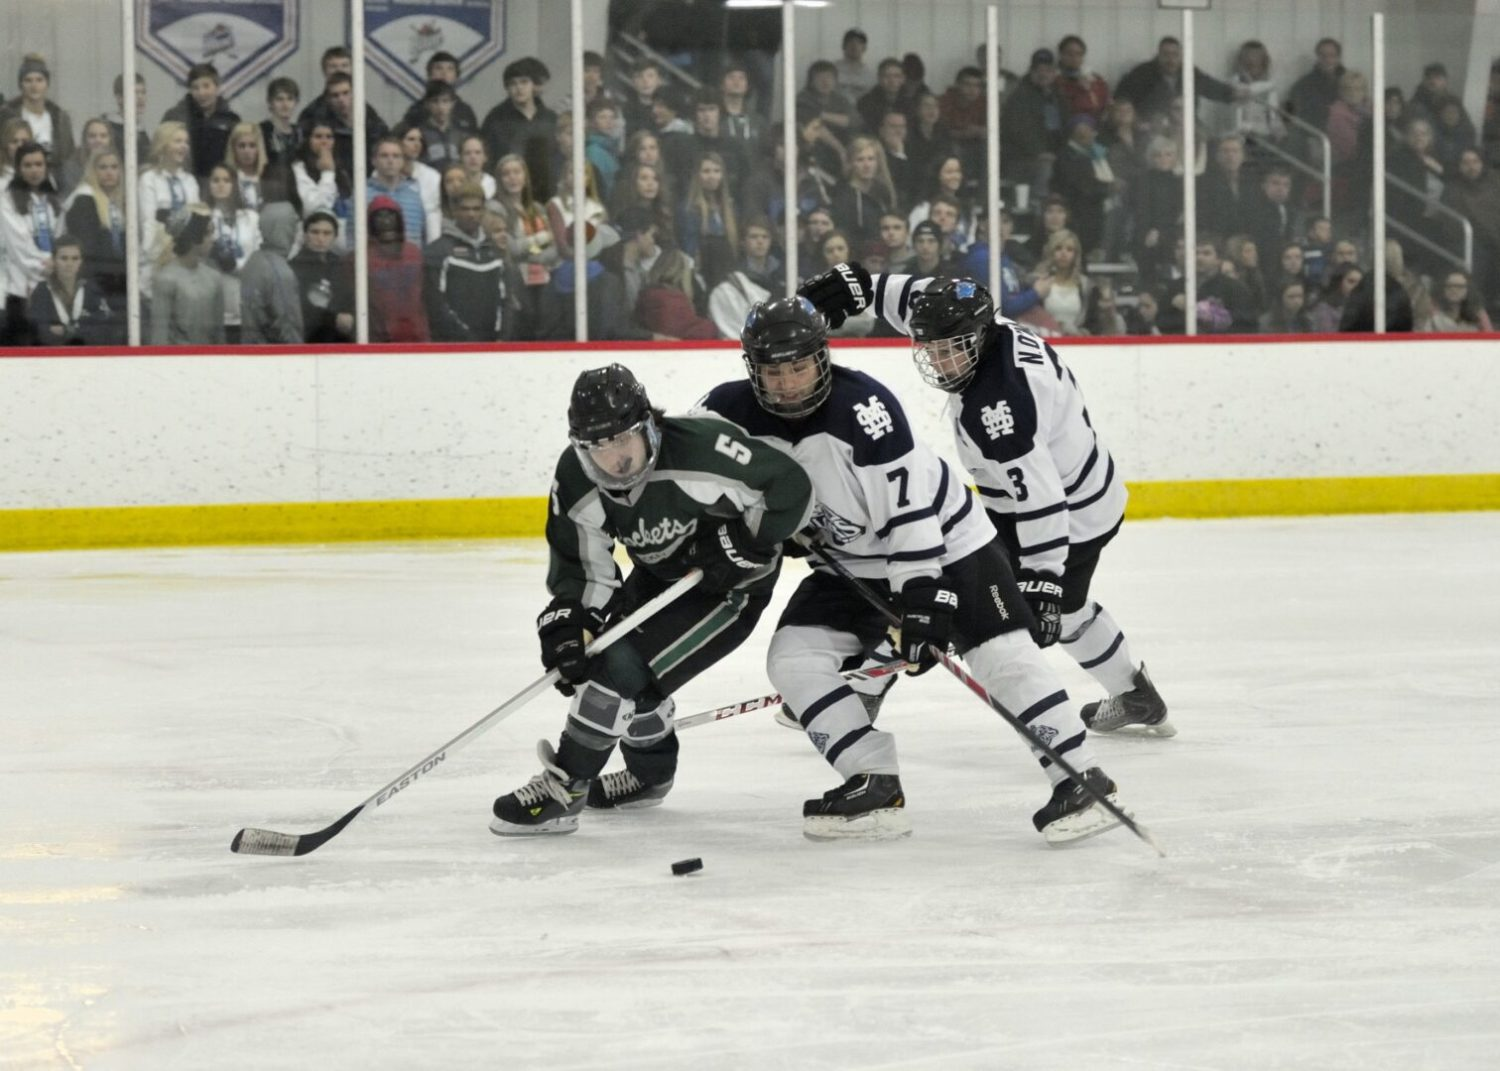 Two power play goals give Mona Shores a 3-2 victory over rival Reeths-Puffer in high school hockey